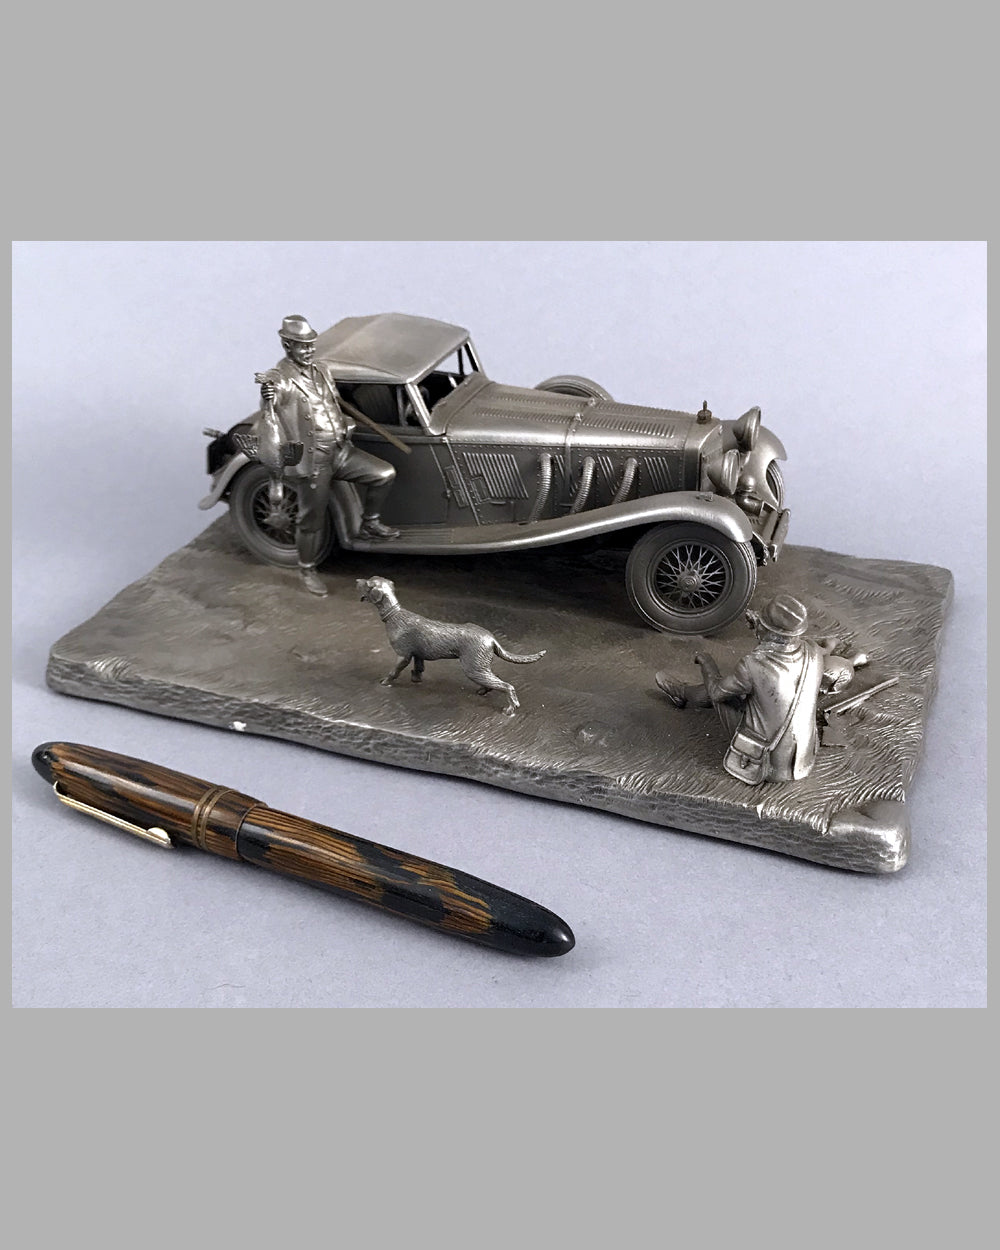 1929 Mercedes-Benz 500 SSK pewter sculpture by Raymond Meyers